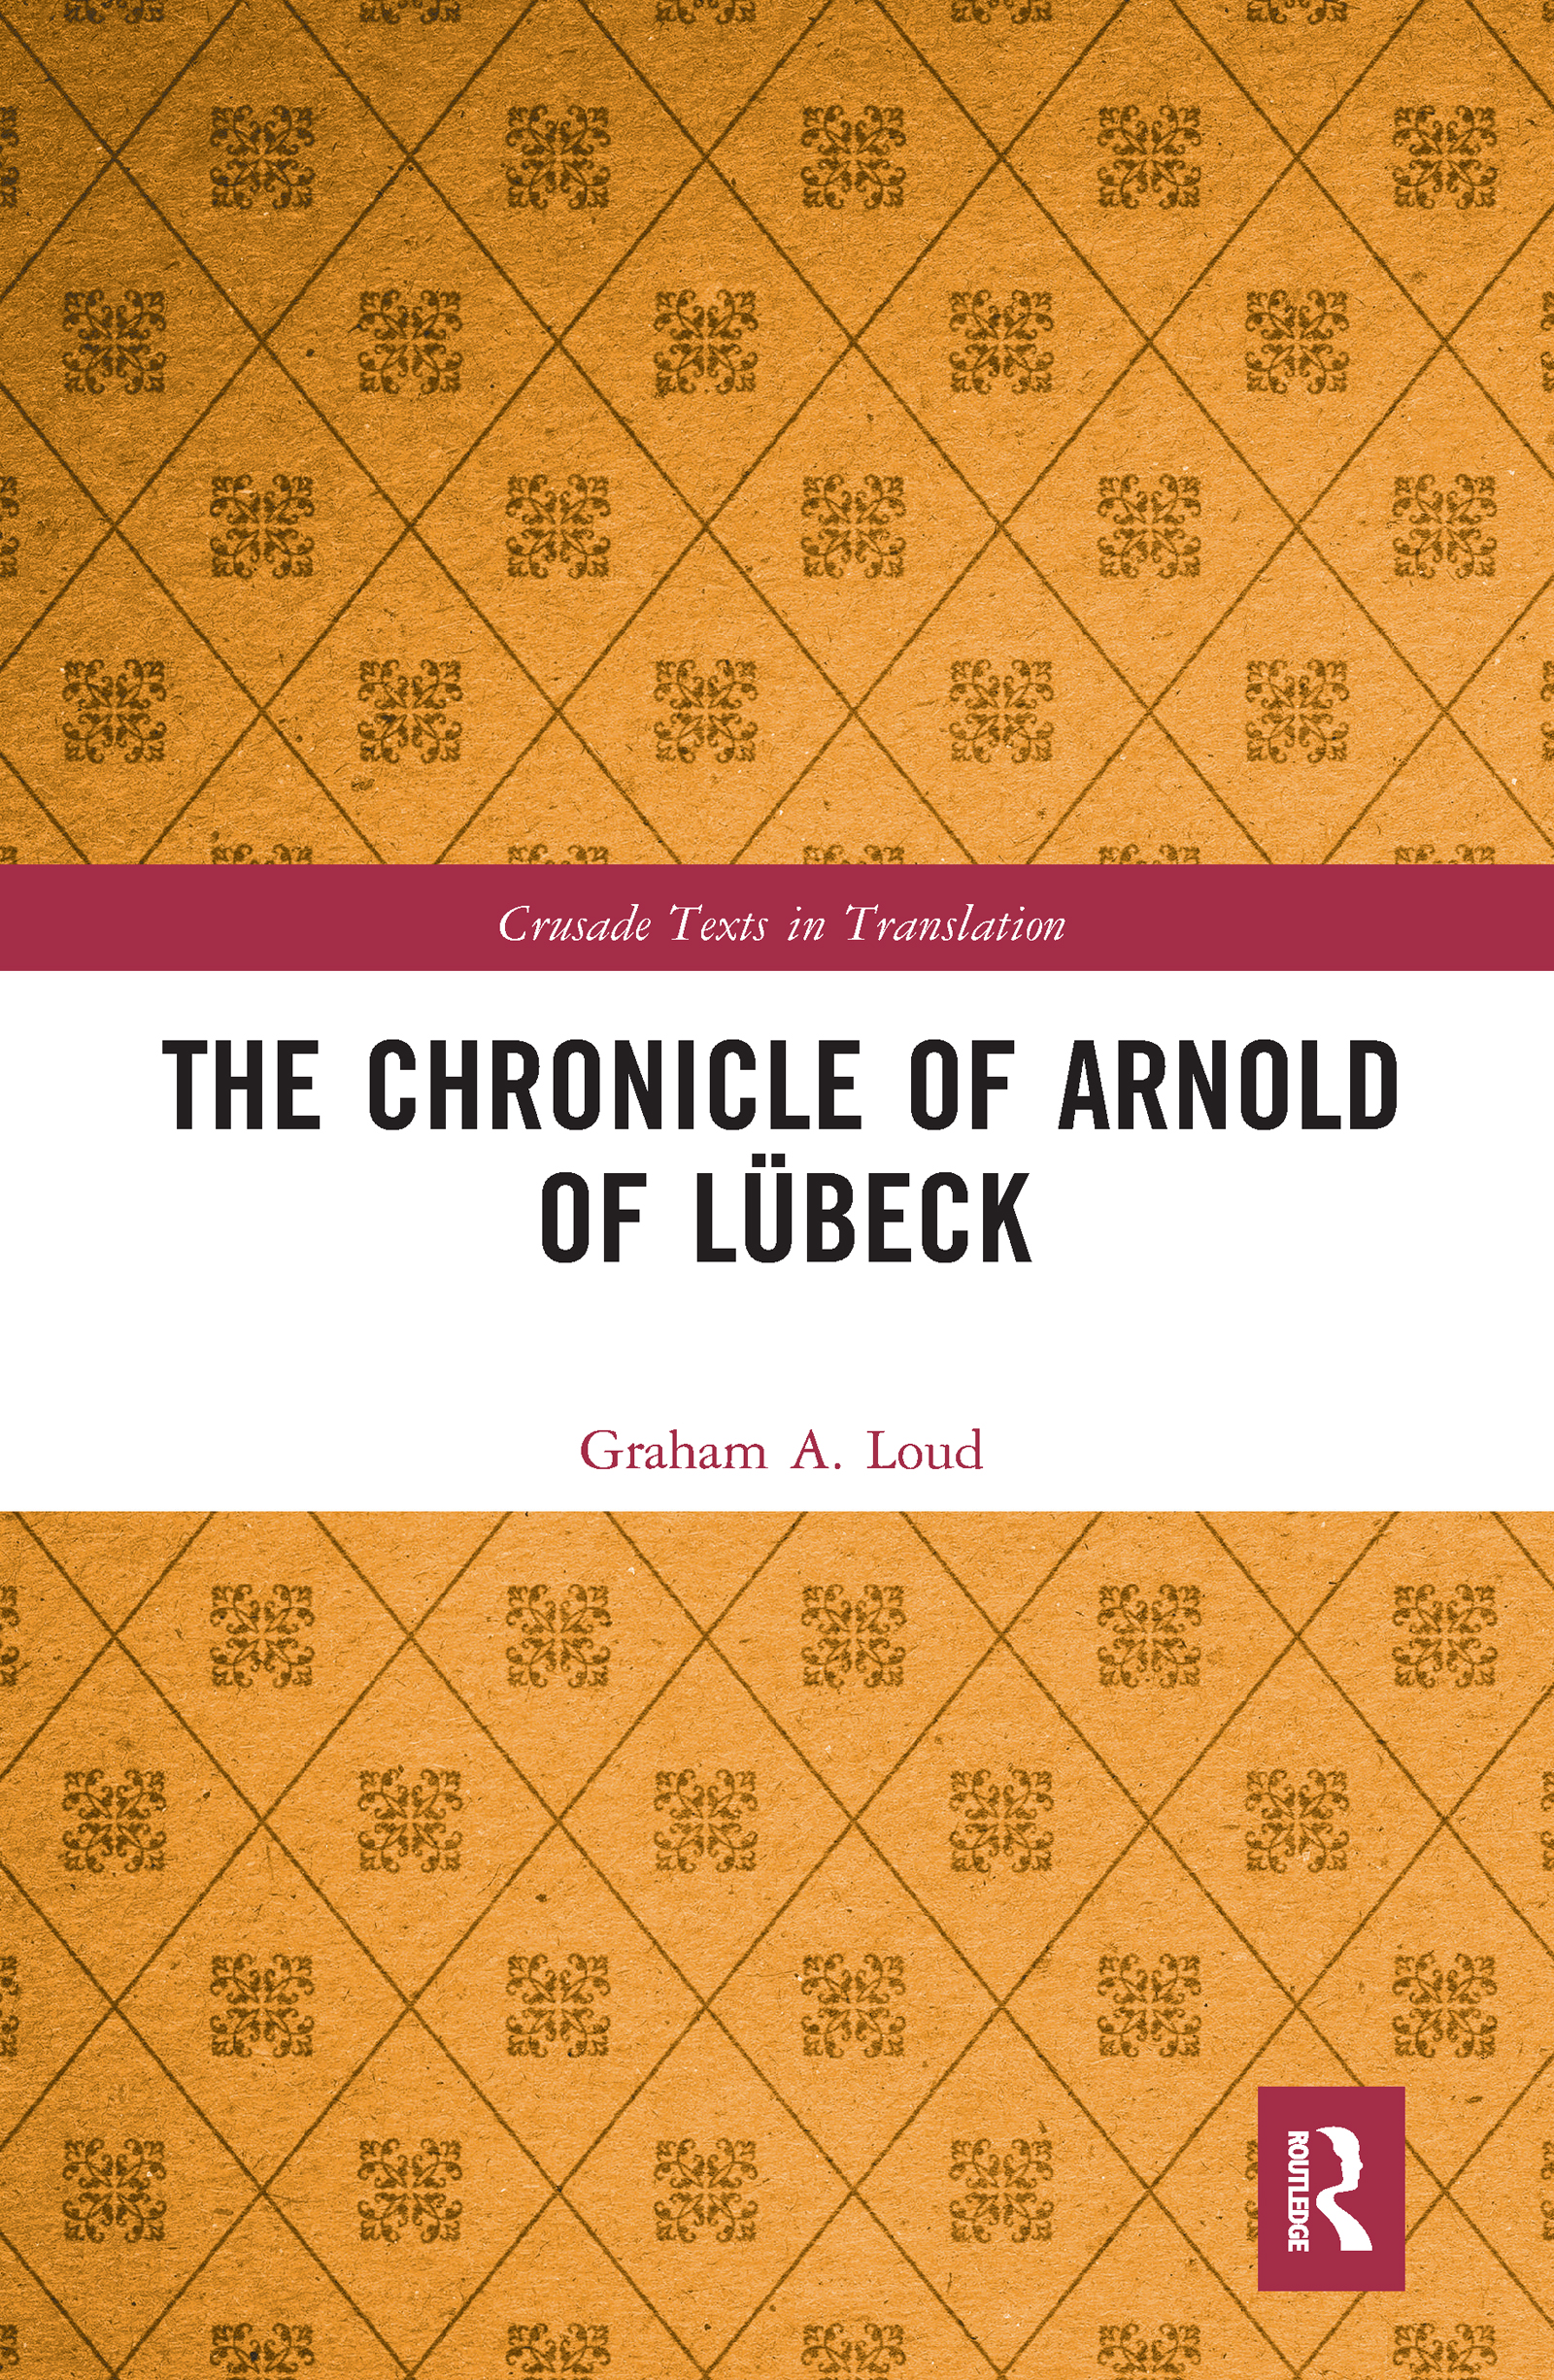 The Chronicle of Arnold of Lübeck